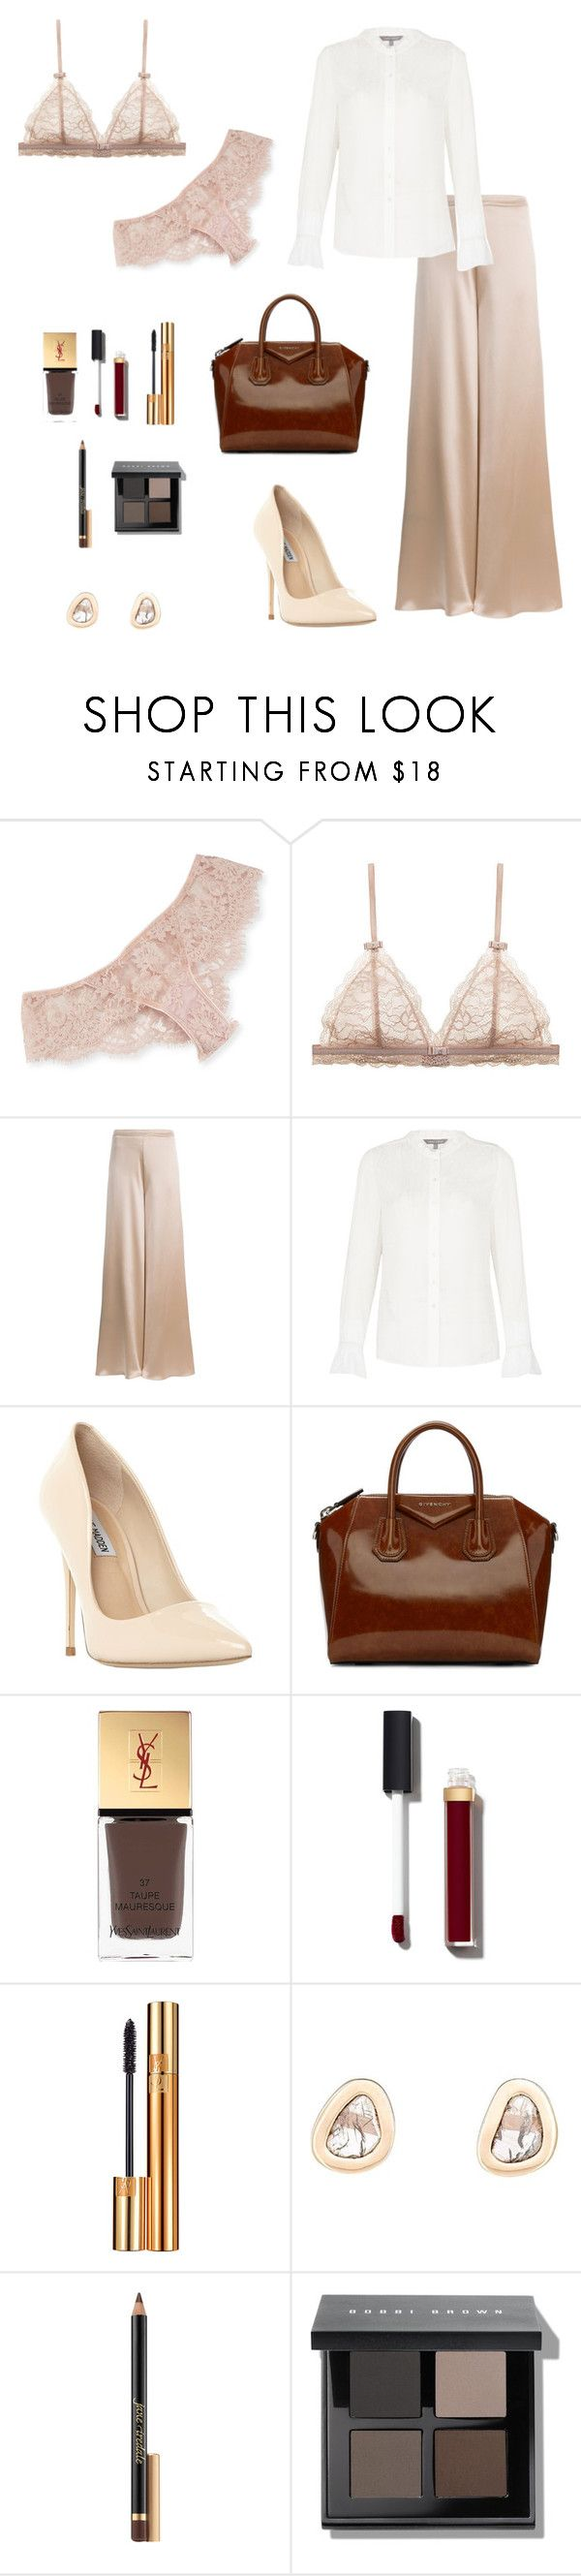 """""""Untitled #501"""" by ladyasdis ❤ liked on Polyvore featuring I.D. SARRIERI, Voz, Laura Ashley, Steve Madden, Givenchy, Yves Saint Laurent, Chanel, Dezso by Sara Beltrán, Jane Iredale and Bobbi Brown Cosmetics"""